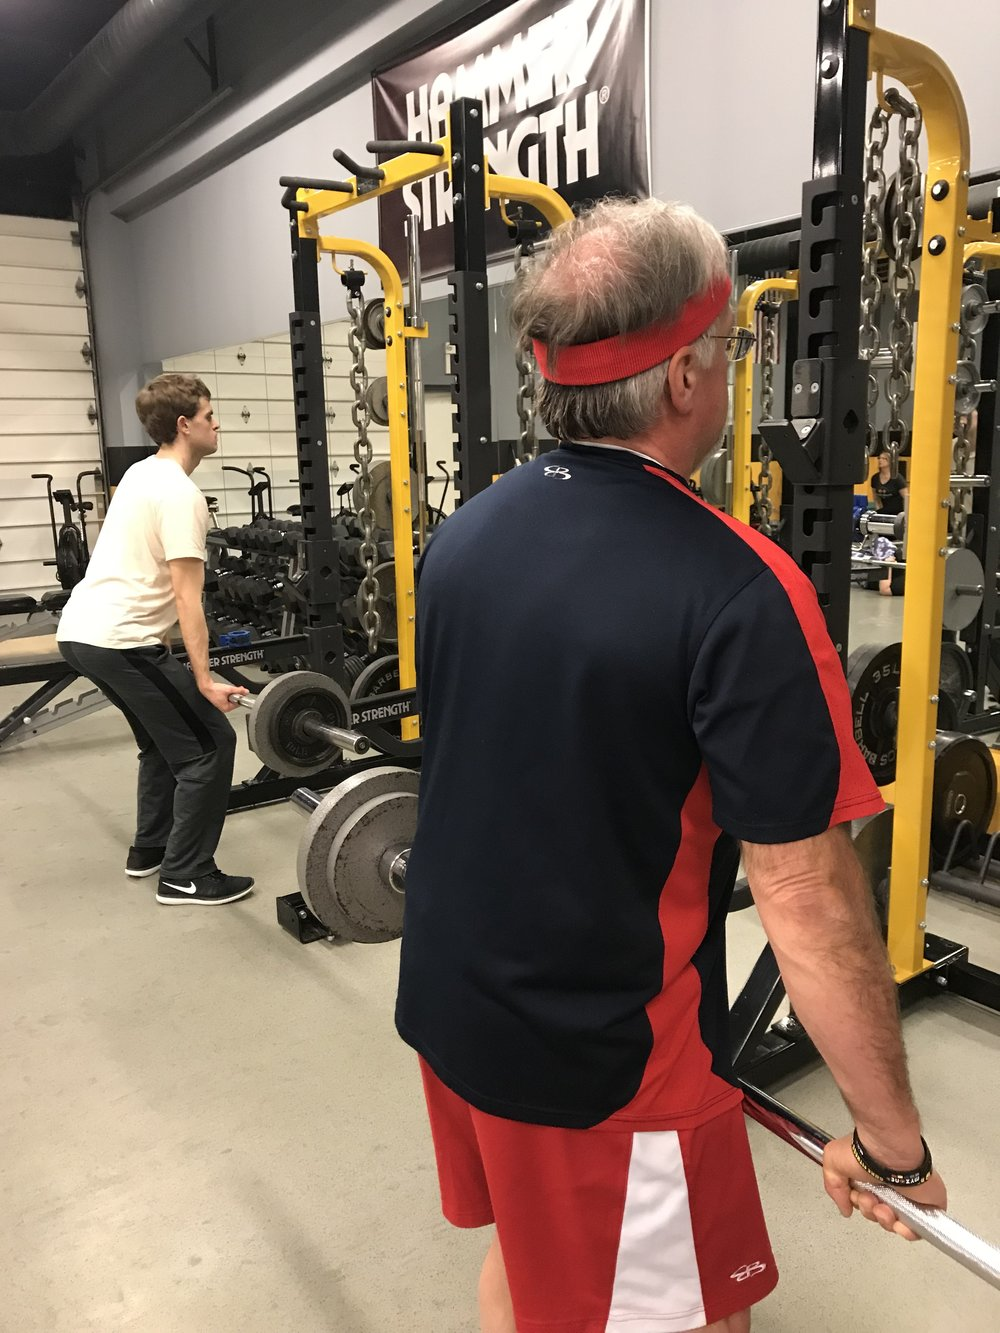 A couple of REAL people working out!